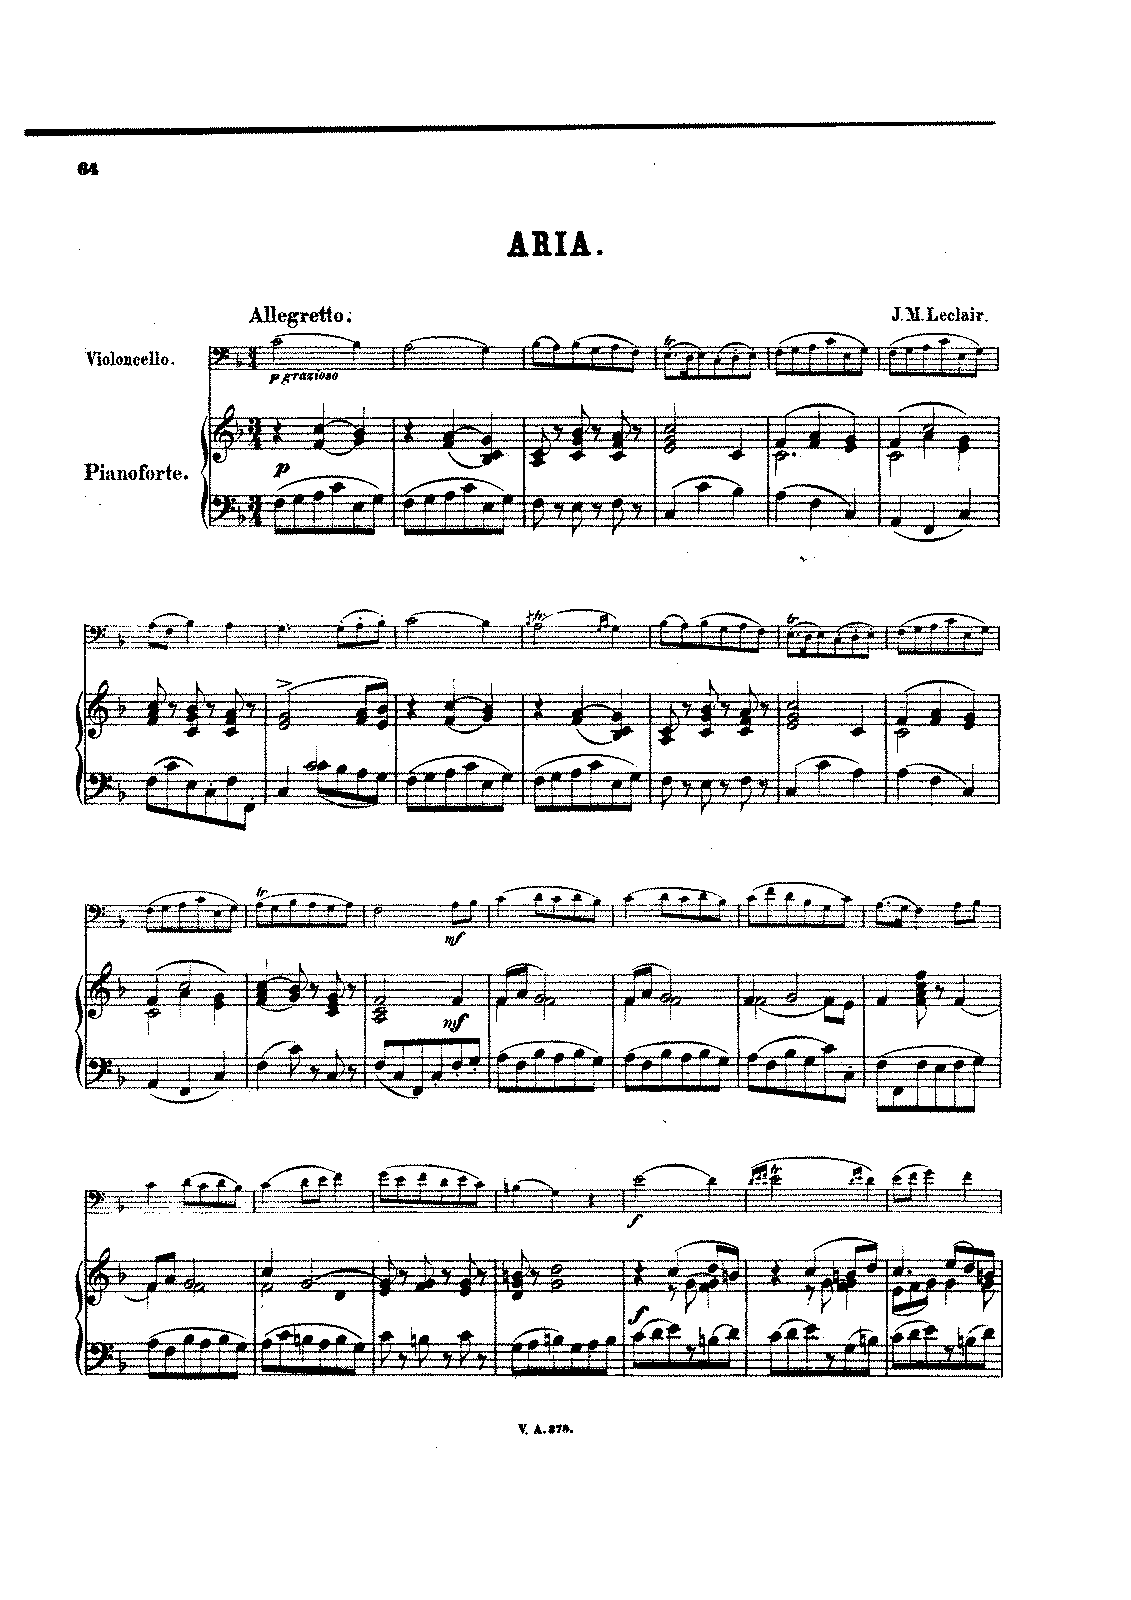 PMLP133294-Leclair - Aria for Cello and Piano score.pdf